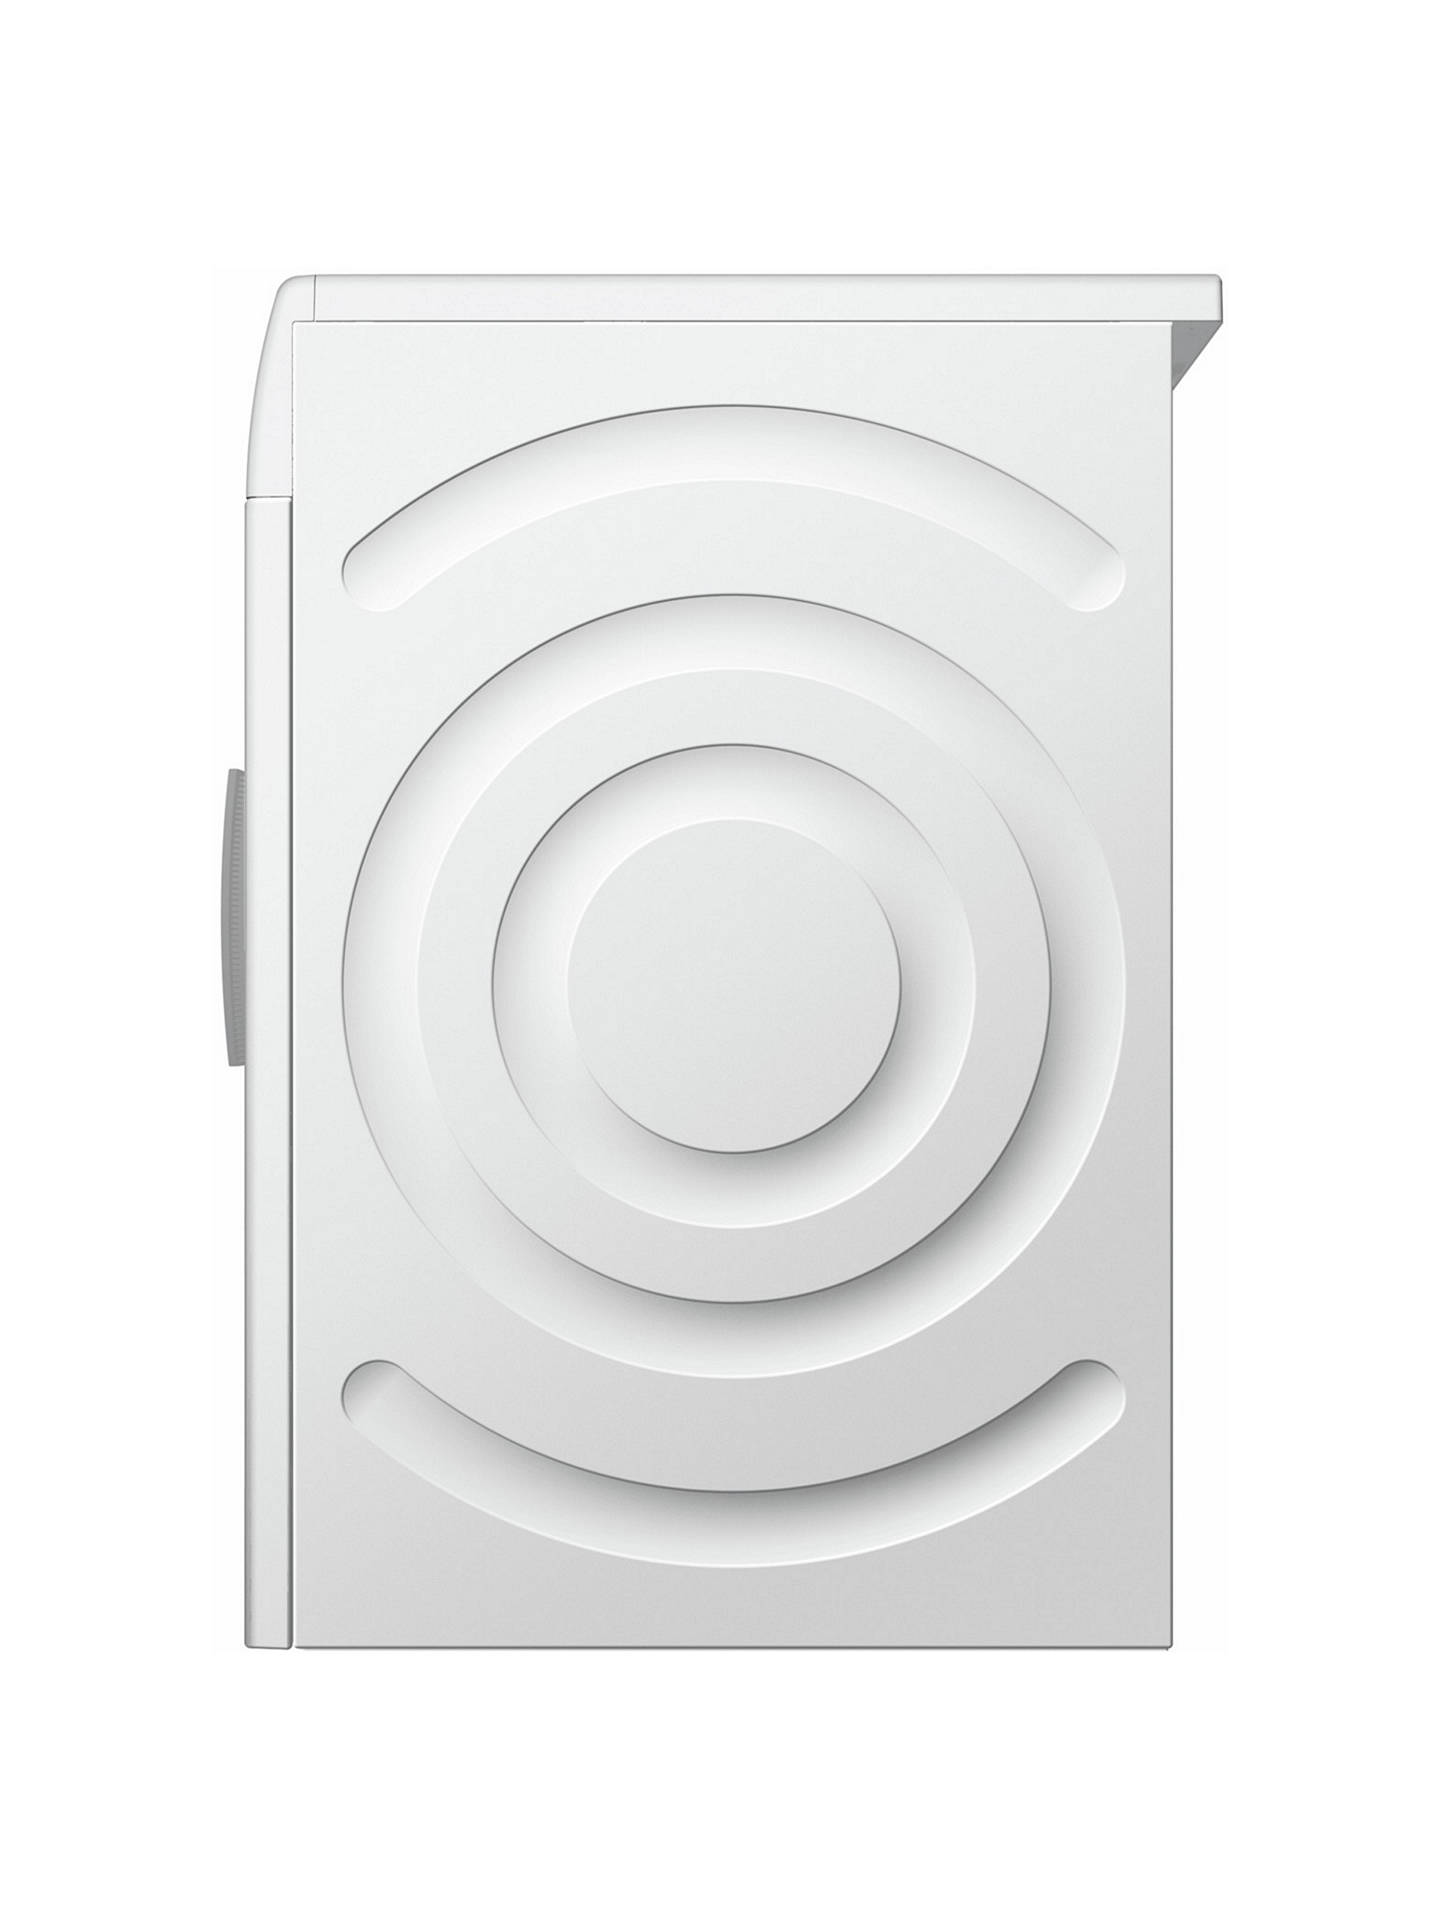 BuyBosch WAN24108GB Freestanding Washing Machine, 8kg Load, A+++ Energy Rating, 1200RPM Spin, White Online at johnlewis.com